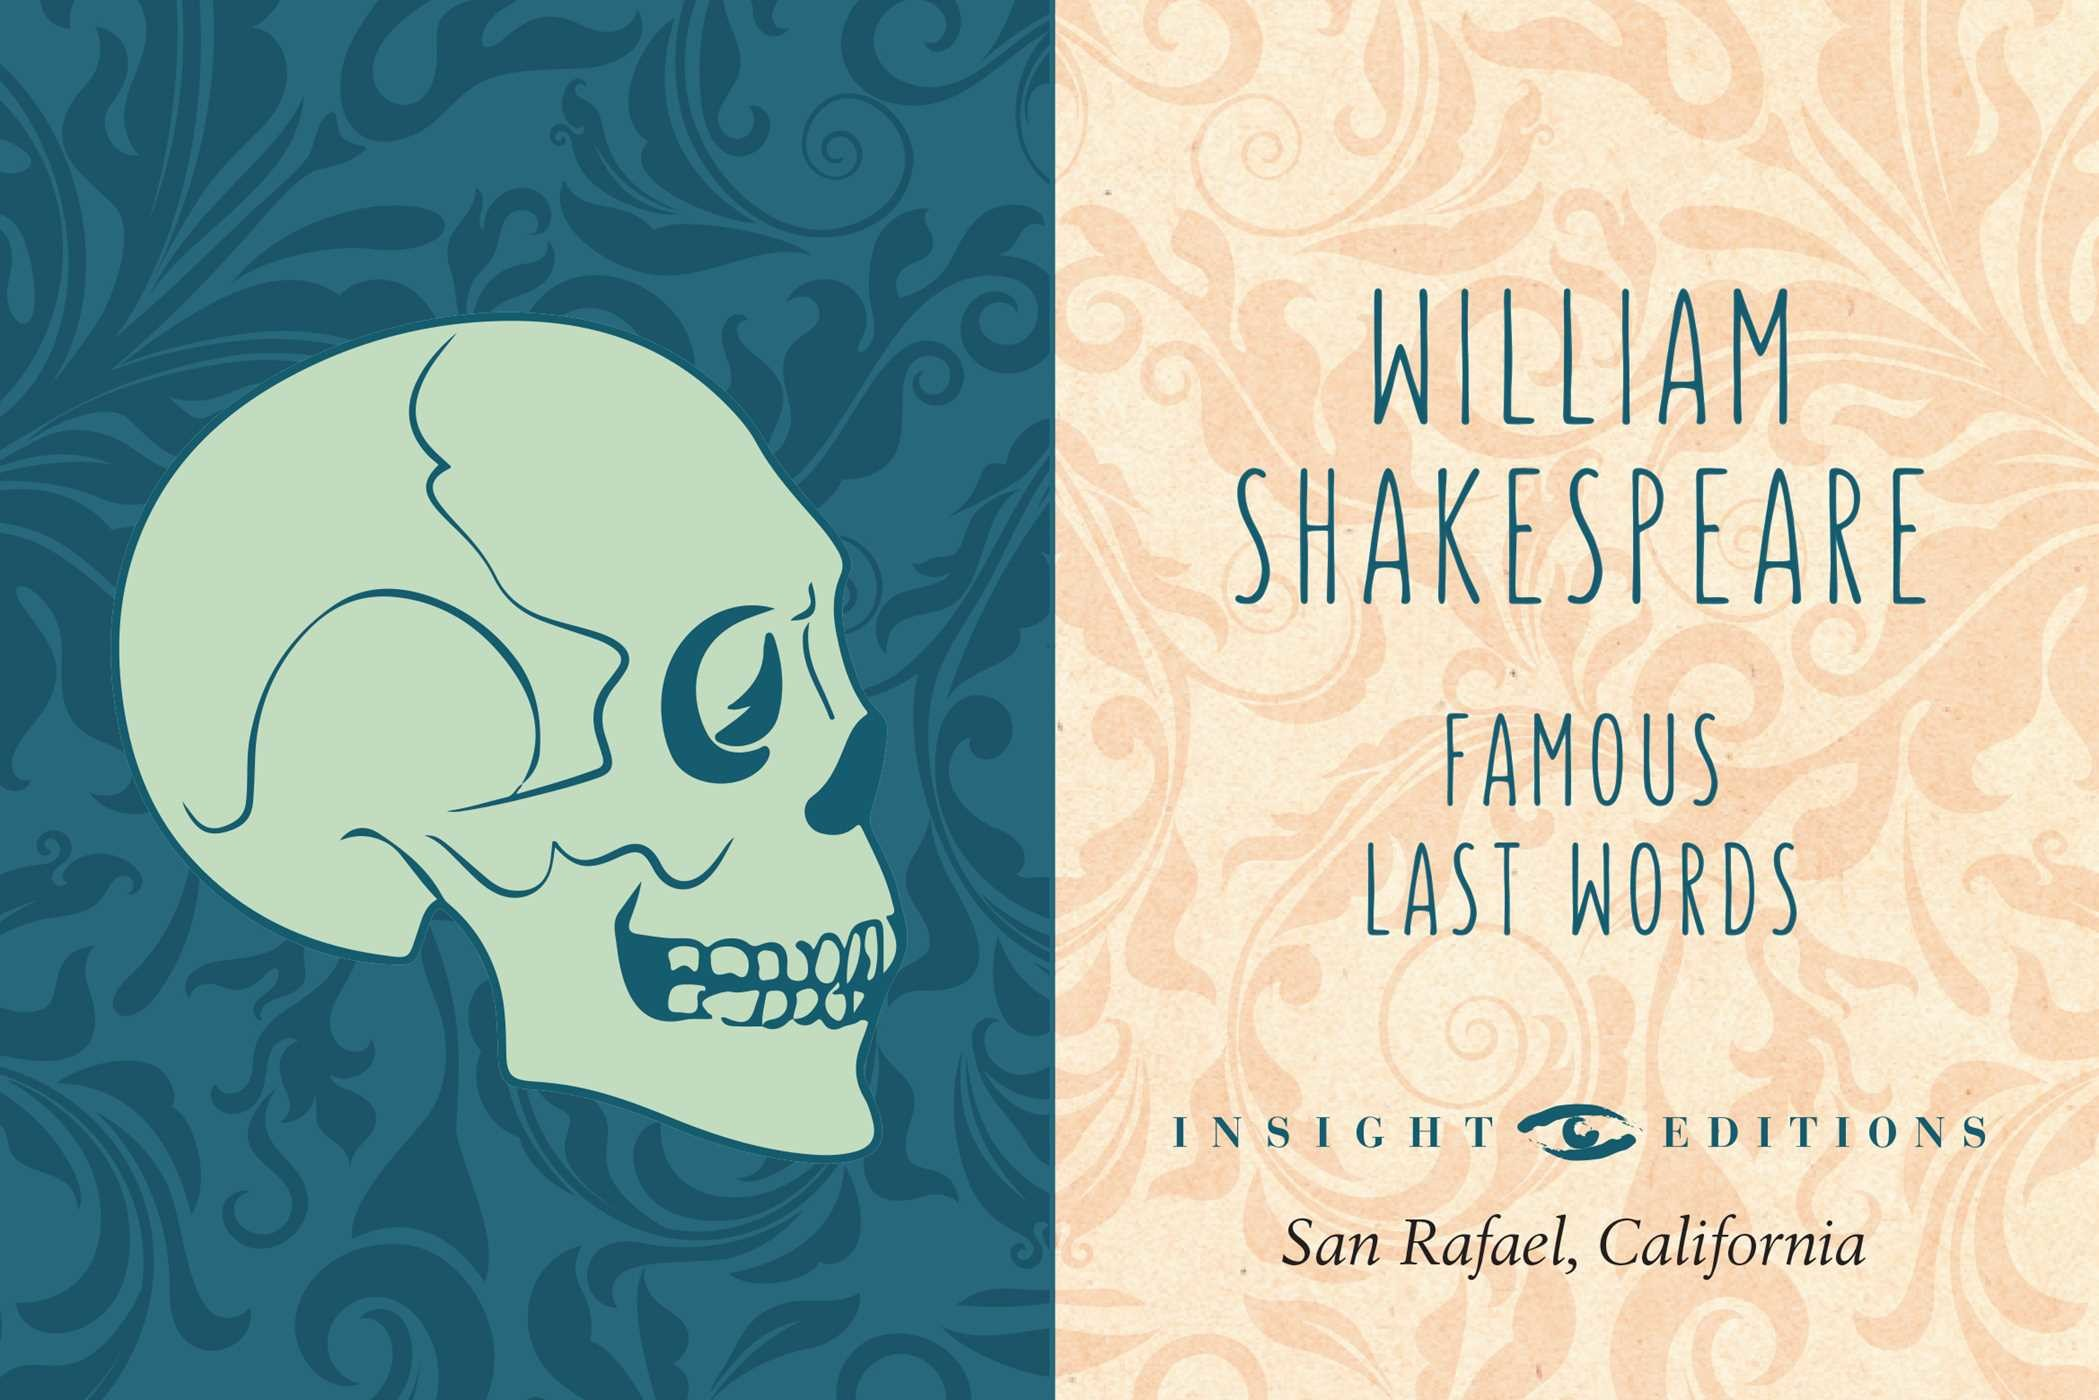 William shakespeare famous last words 9781683835875.in02